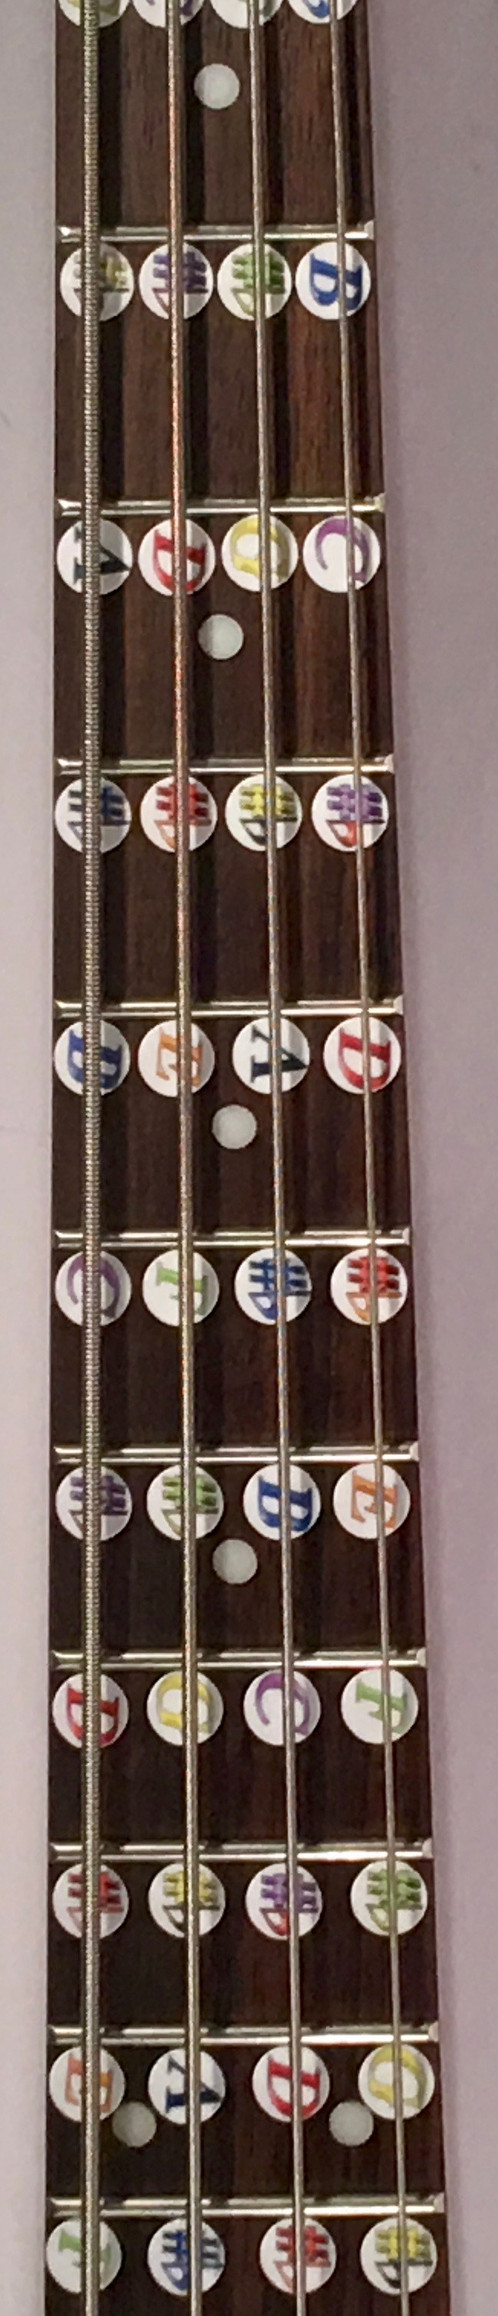 Instructional Fretboard Stickers For Bass Guitar Times New Roman